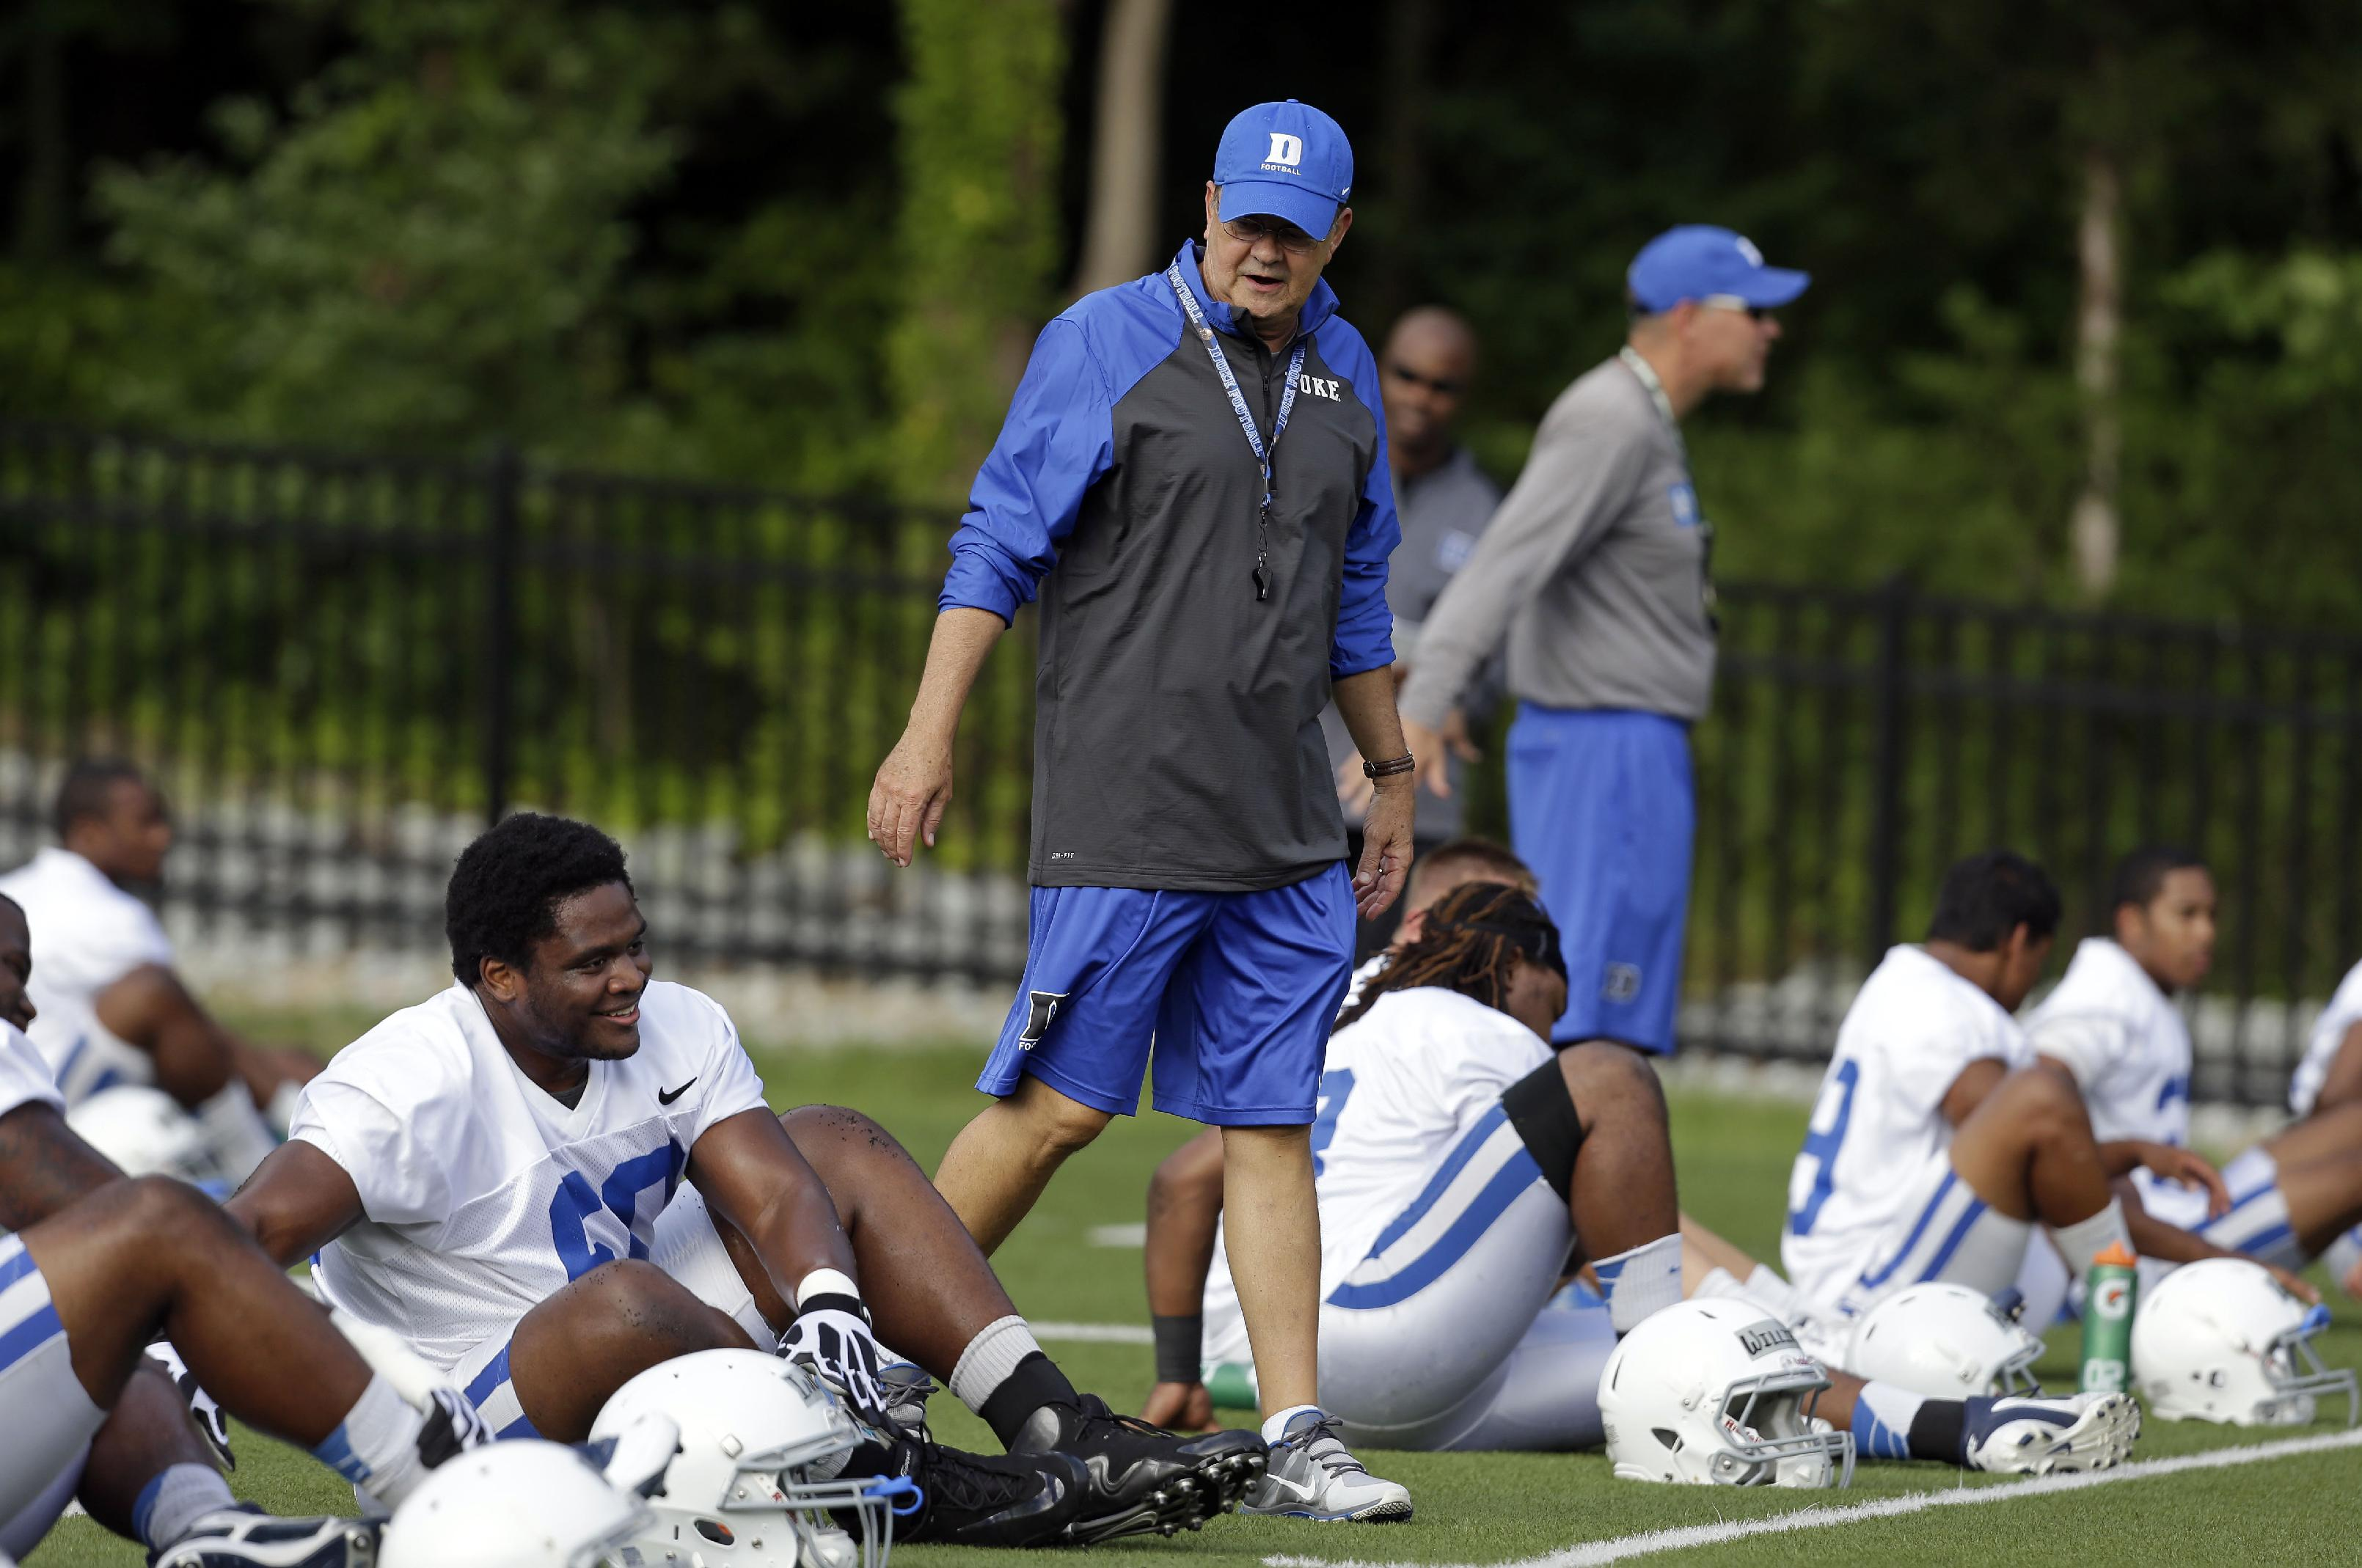 In this Monday, Aug. 5, 2013, file photo, Duke coach David Cutcliffe chats with players as they stretch during an NCAA college football practice in Durham, N.C. A growing number of college coaches are watching the social media behavior of student athletes, including Cutcliffe